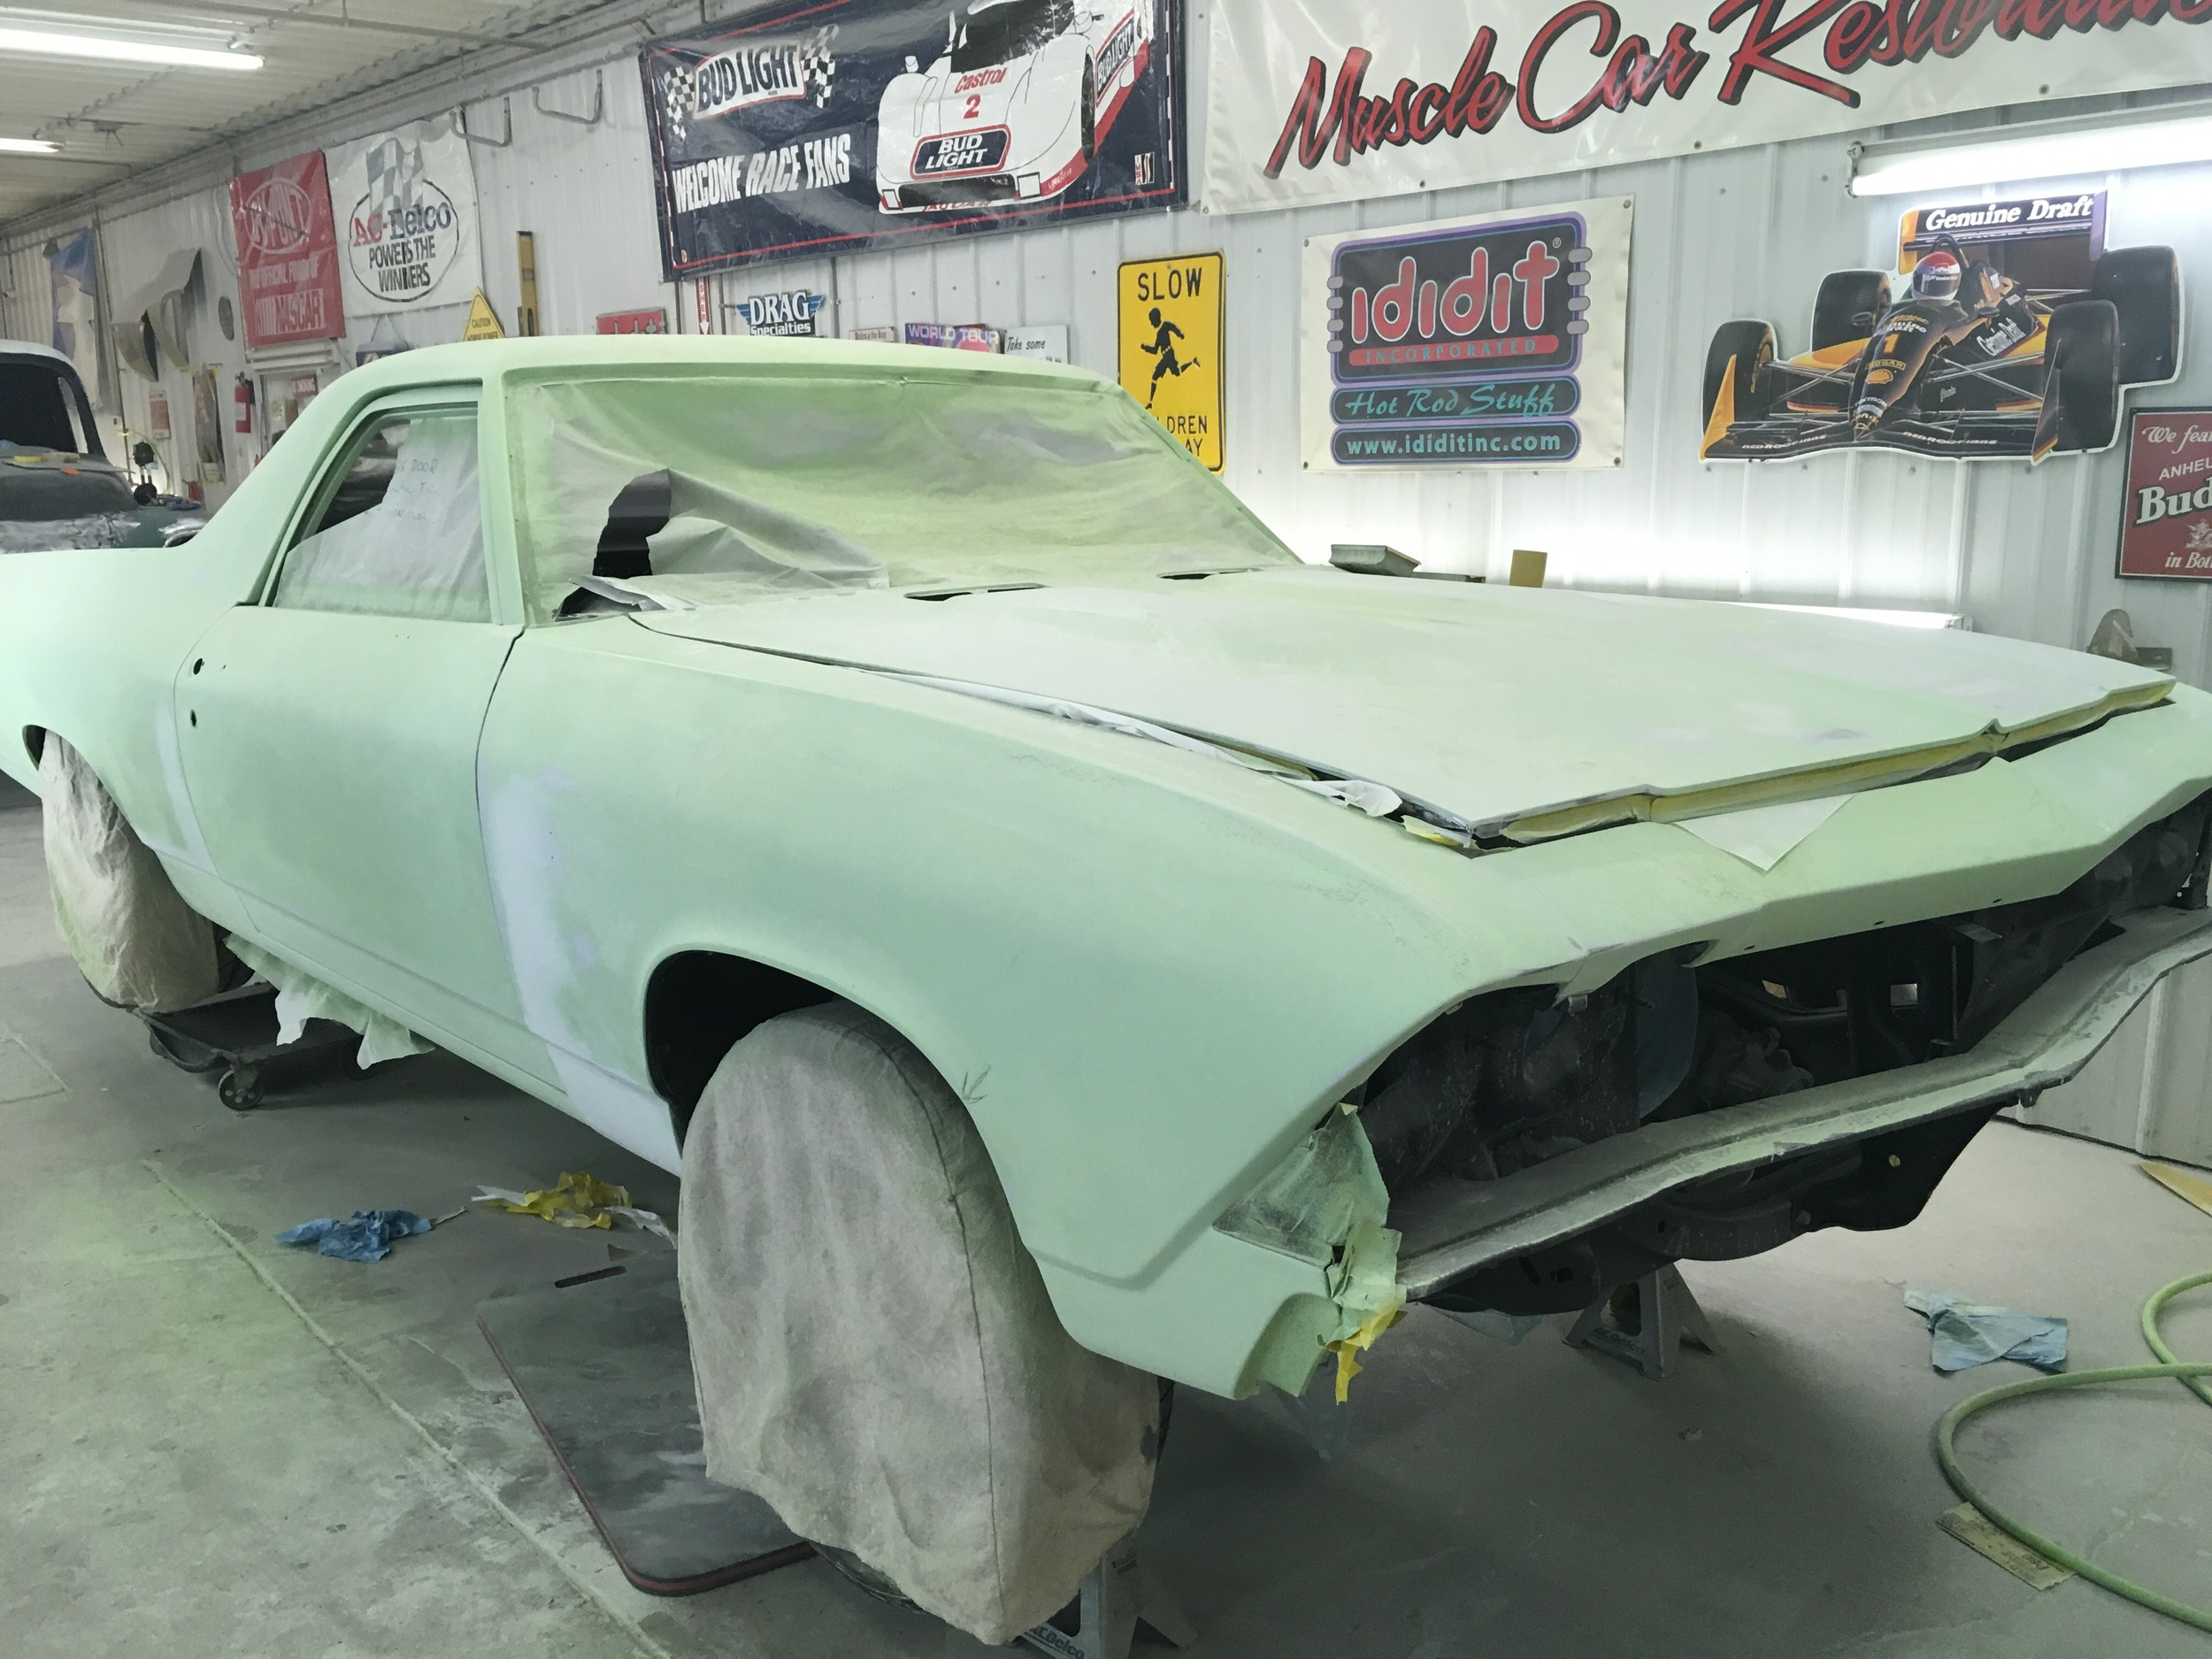 Blocking and priming, getting ready for next coat, 1968 El Camino